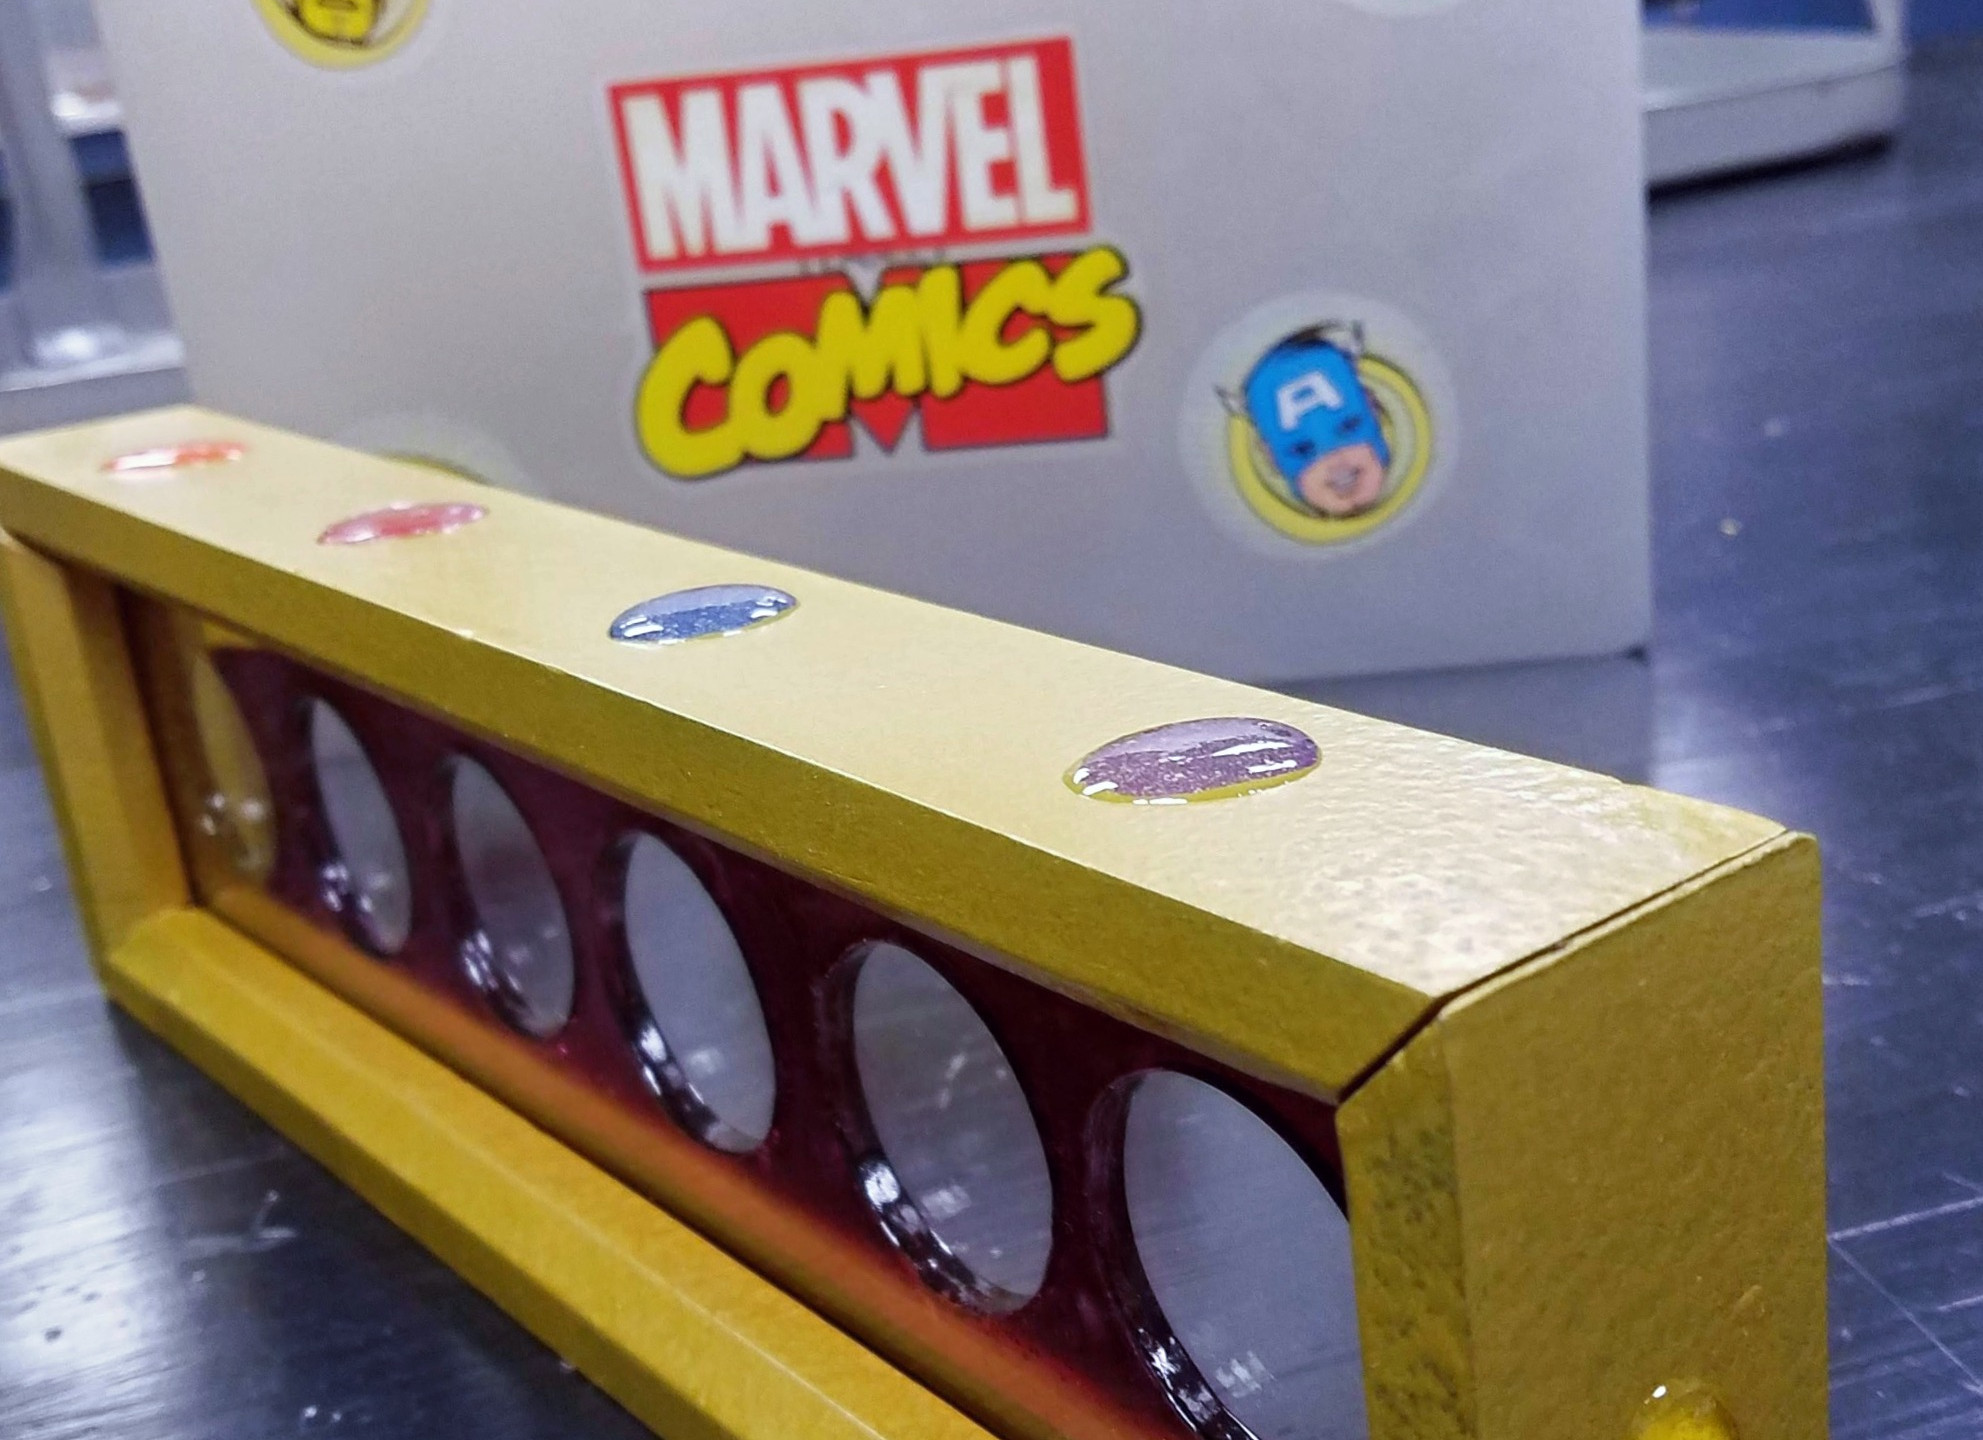 Krylon, hammered gold, spray paint,wood shop, DIY, Wood projects, wood frame, shadow box, crayola crayon, dremel router, inlay, epoxy, Infinity Gauntlet, Infinity War, Marvel MCU, super heroes, commemorative coins, black panther, thor, ant-man, Avengers, Endgame, Captain Marvel, Infintiy stones, hulk, spider-man, captain america, iron man